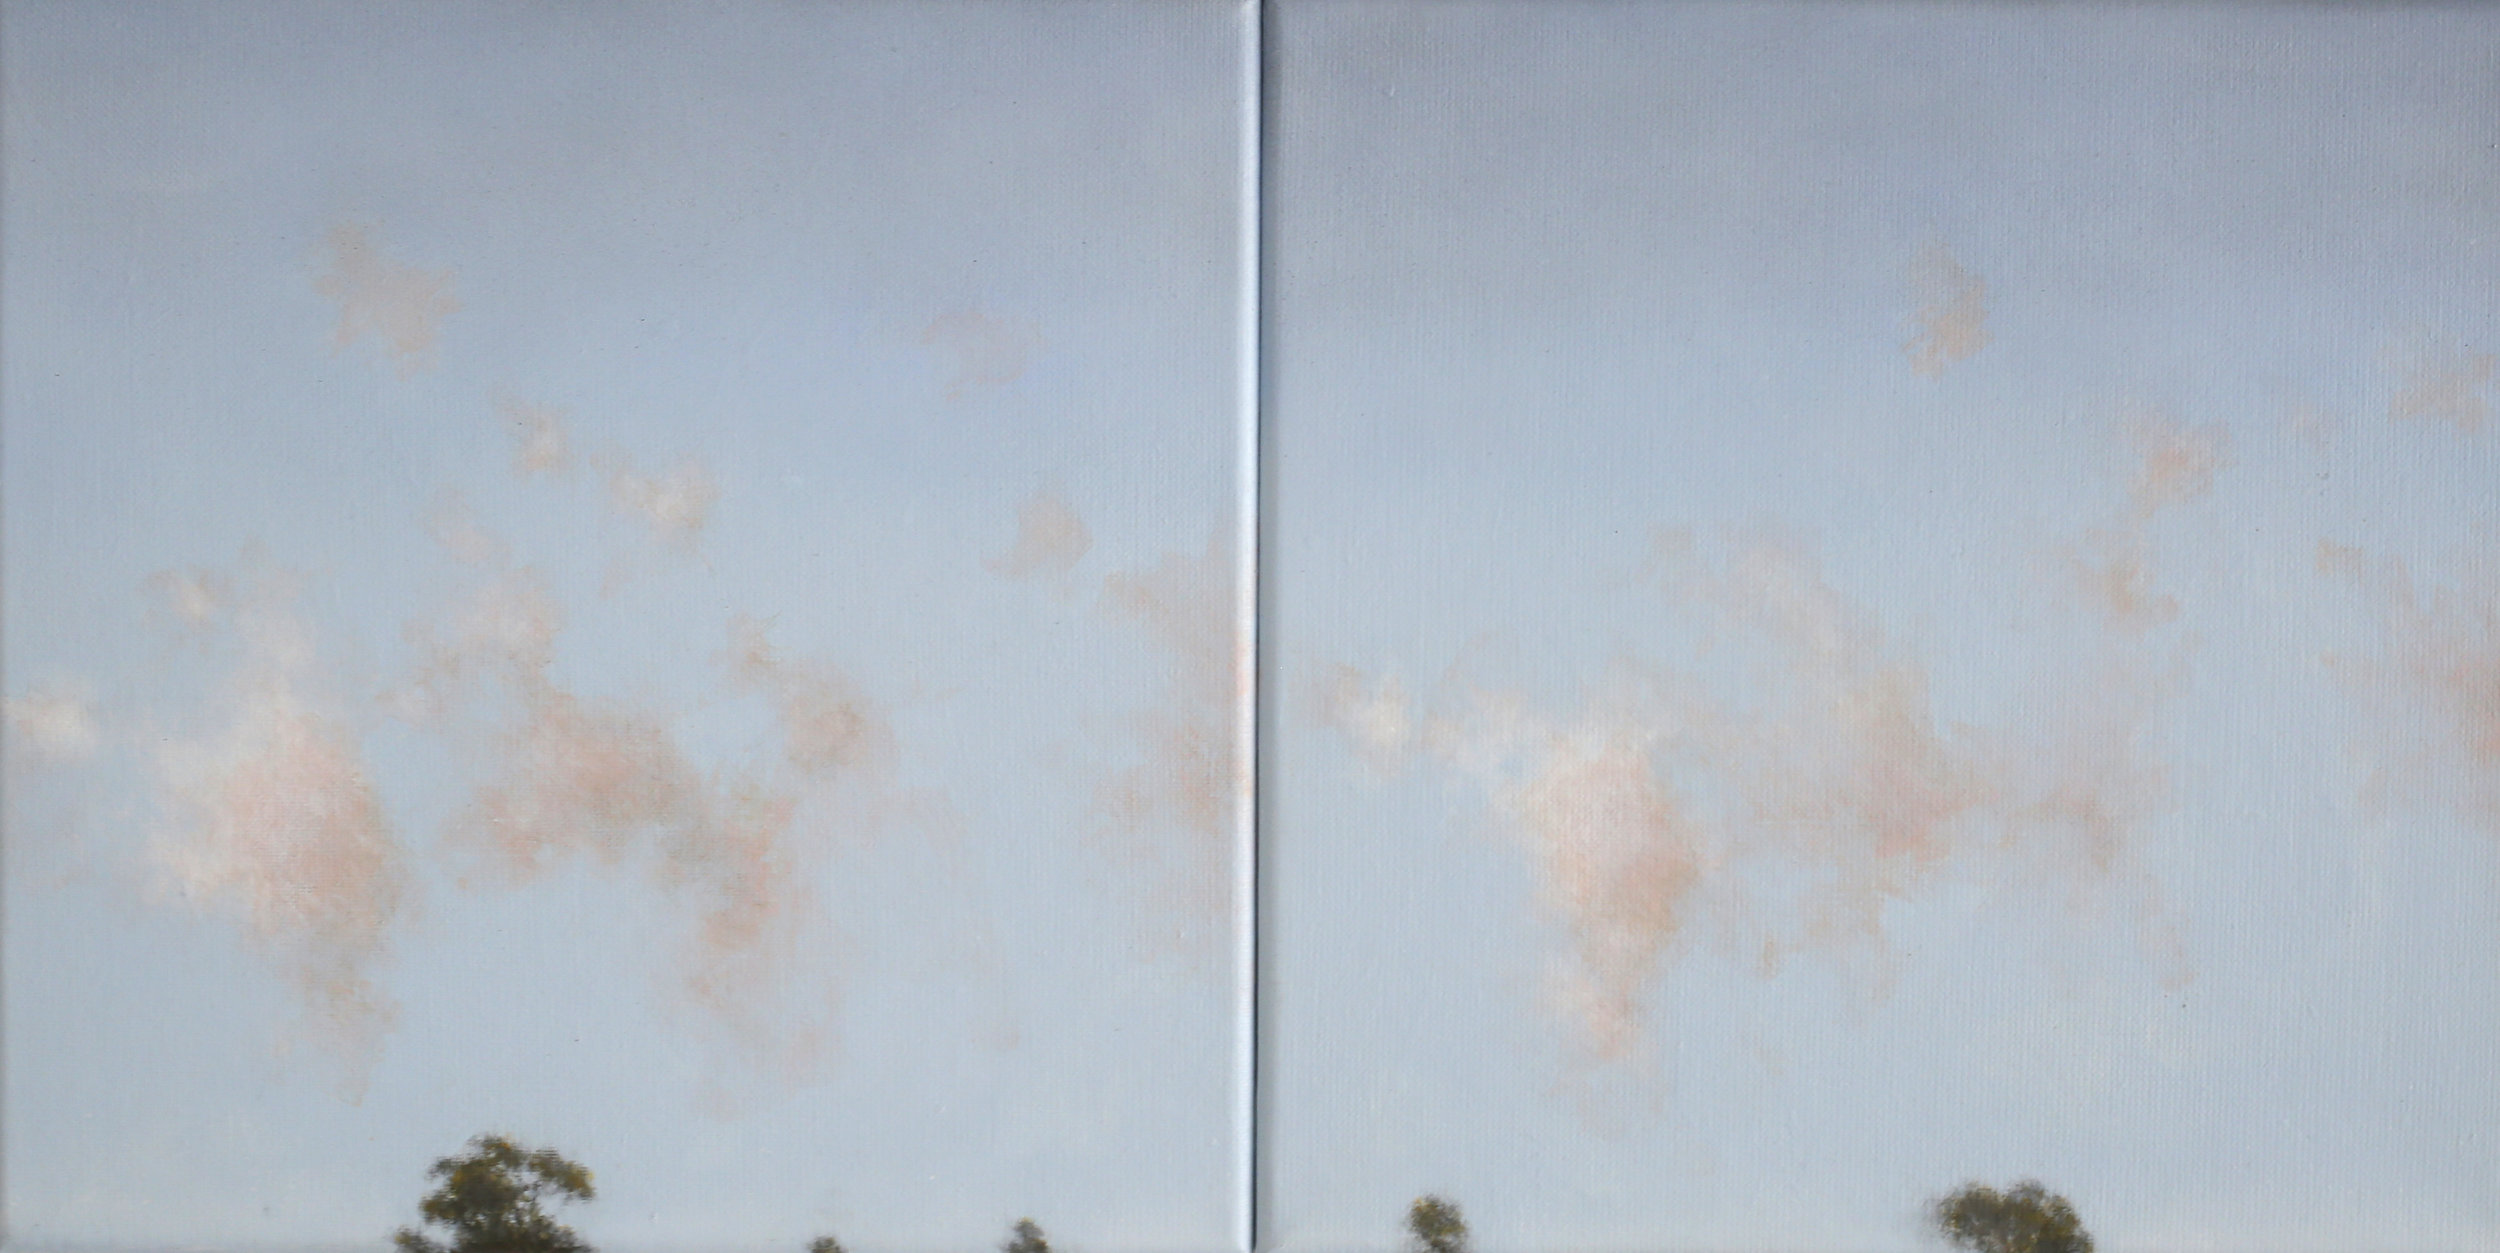 IAN GRANT  (blue sky) Tree Tops III Diptych,  2018 acrylic on linen 30 x 60 cm